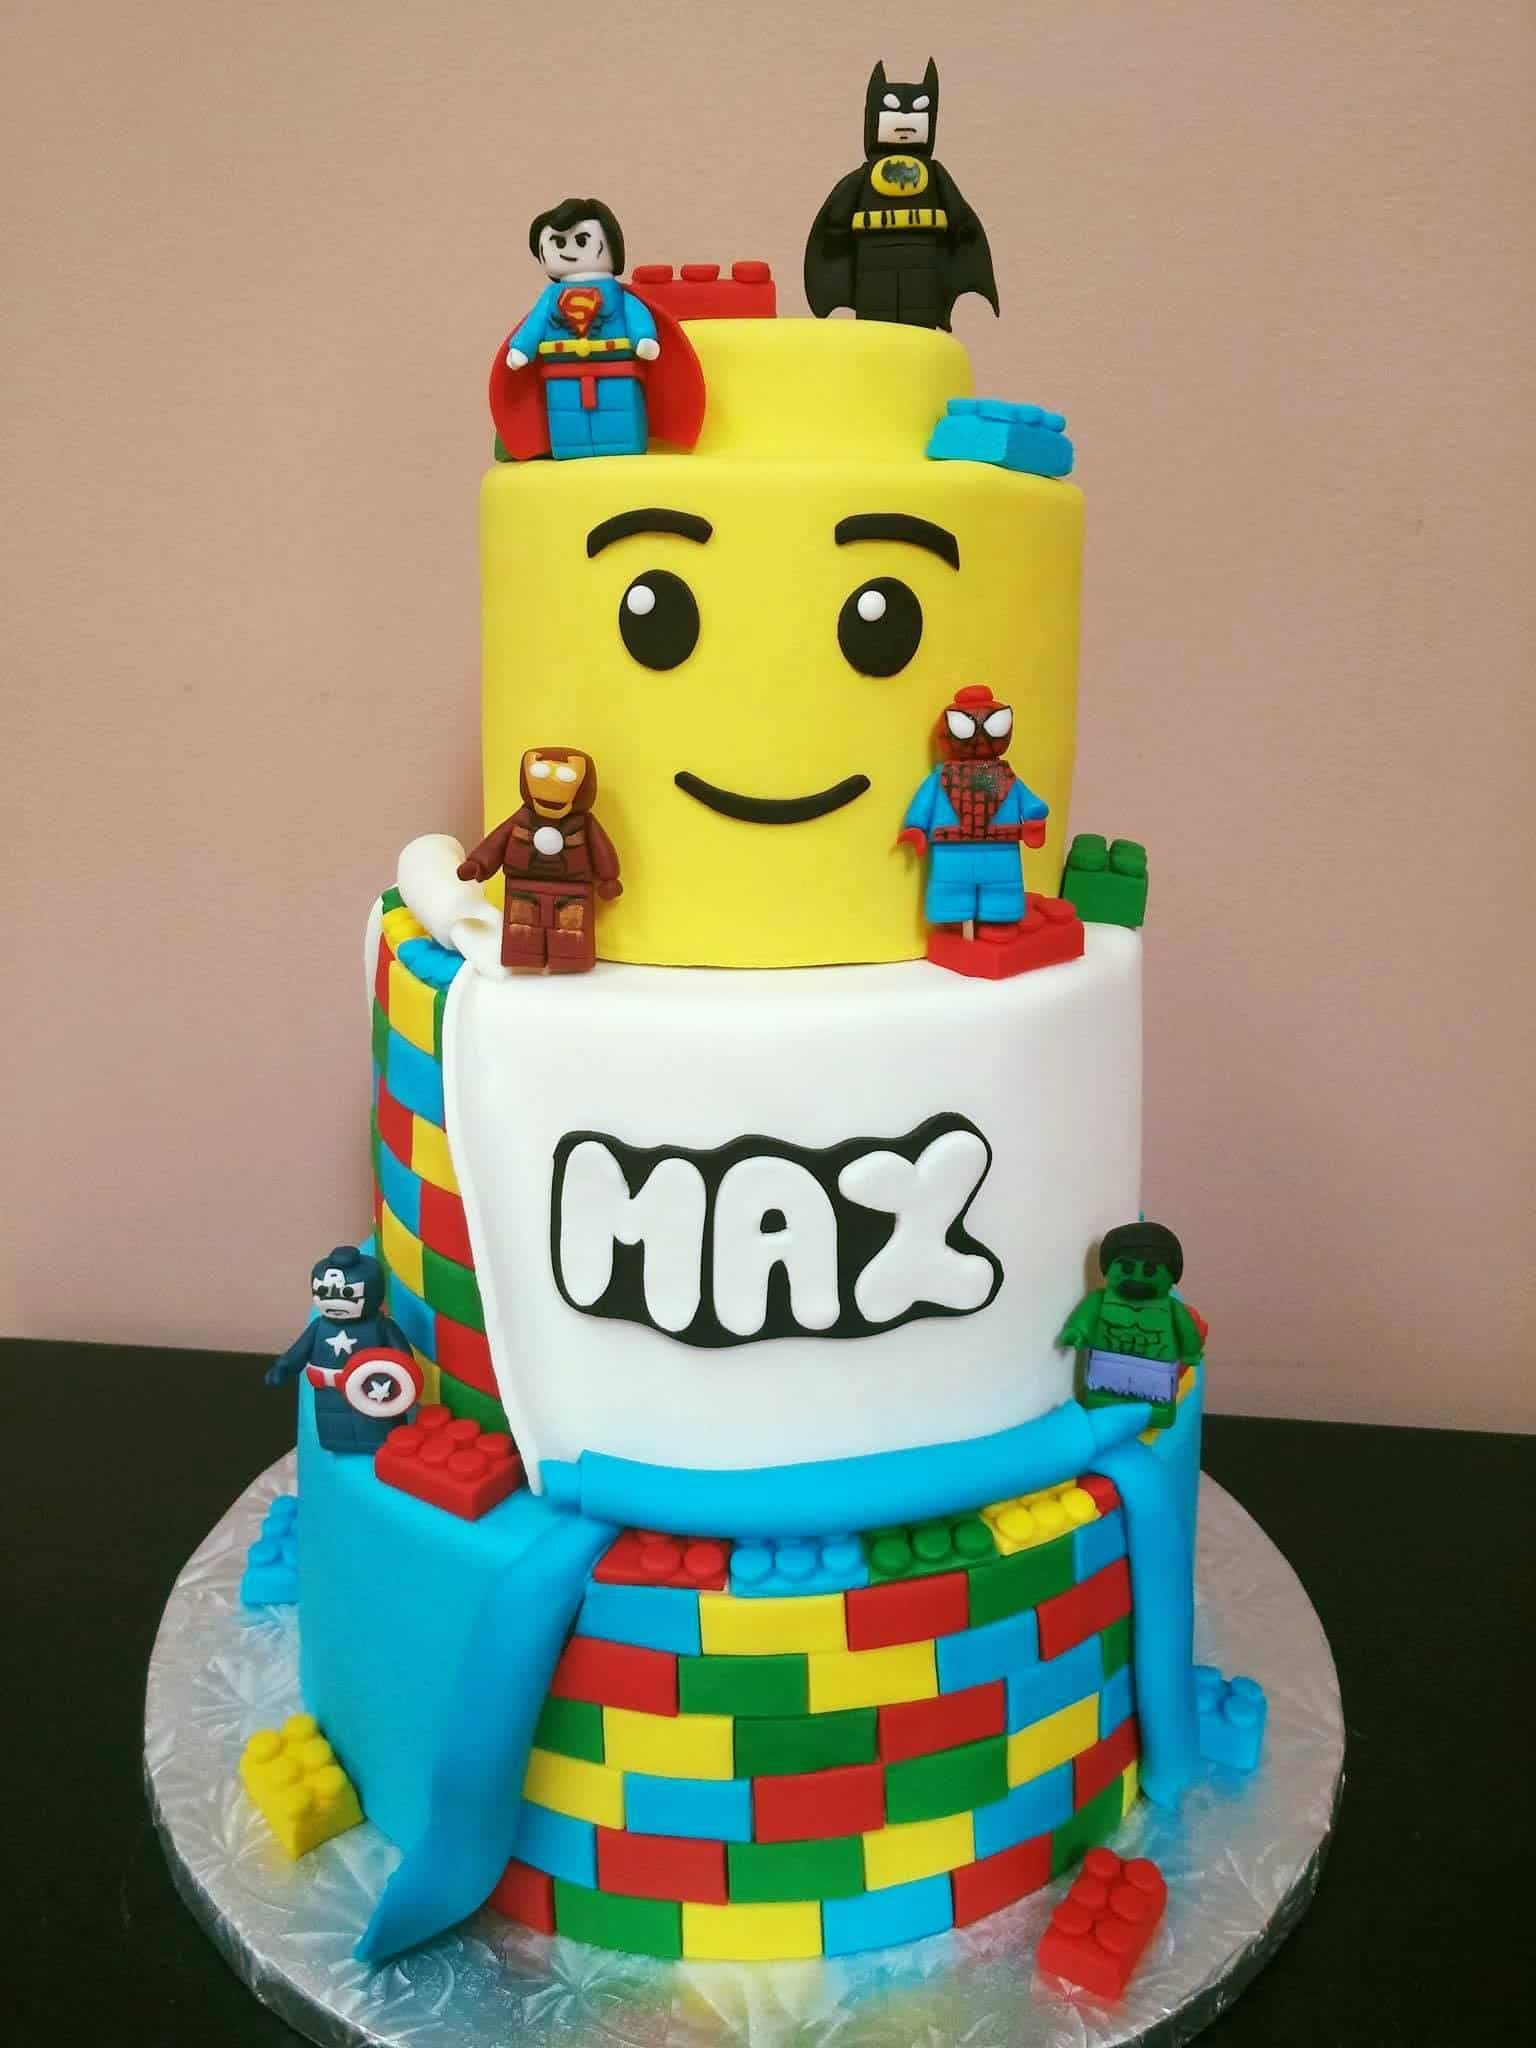 Lego Cake Ideas How To Make A Lego Birthday Cake